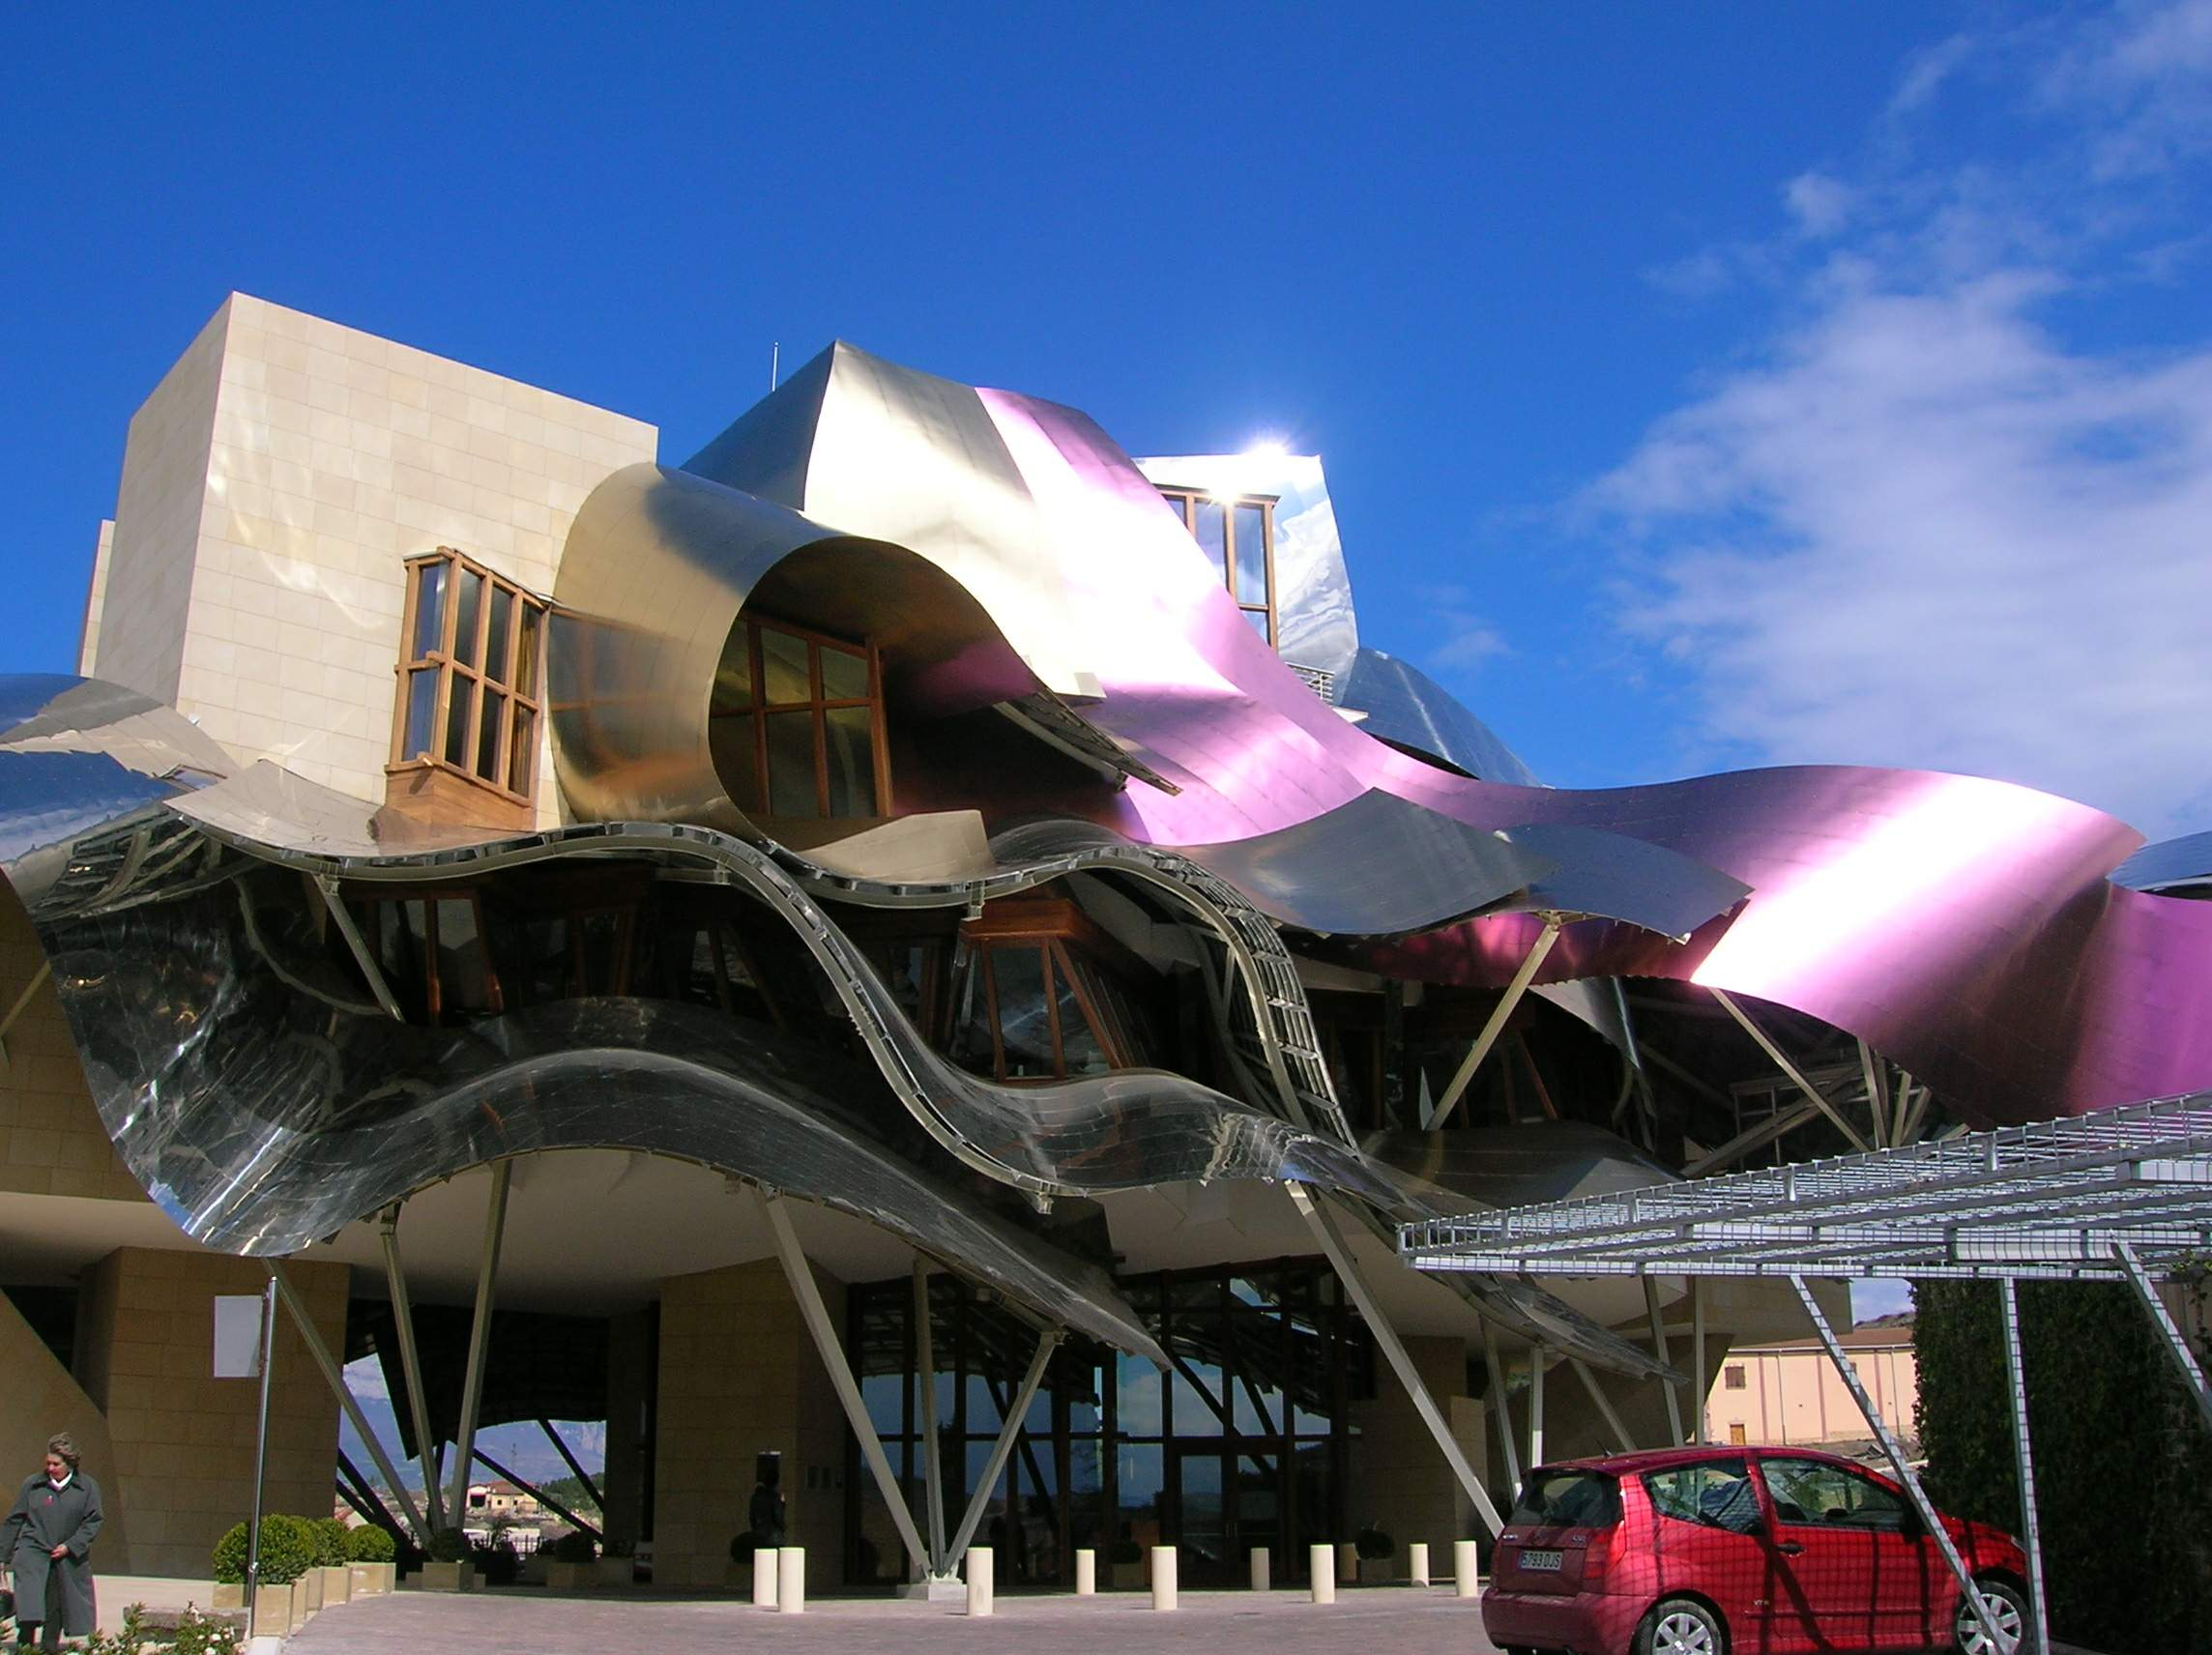 File hotel marques de wikimedia commons for Bodegas marques de riscal